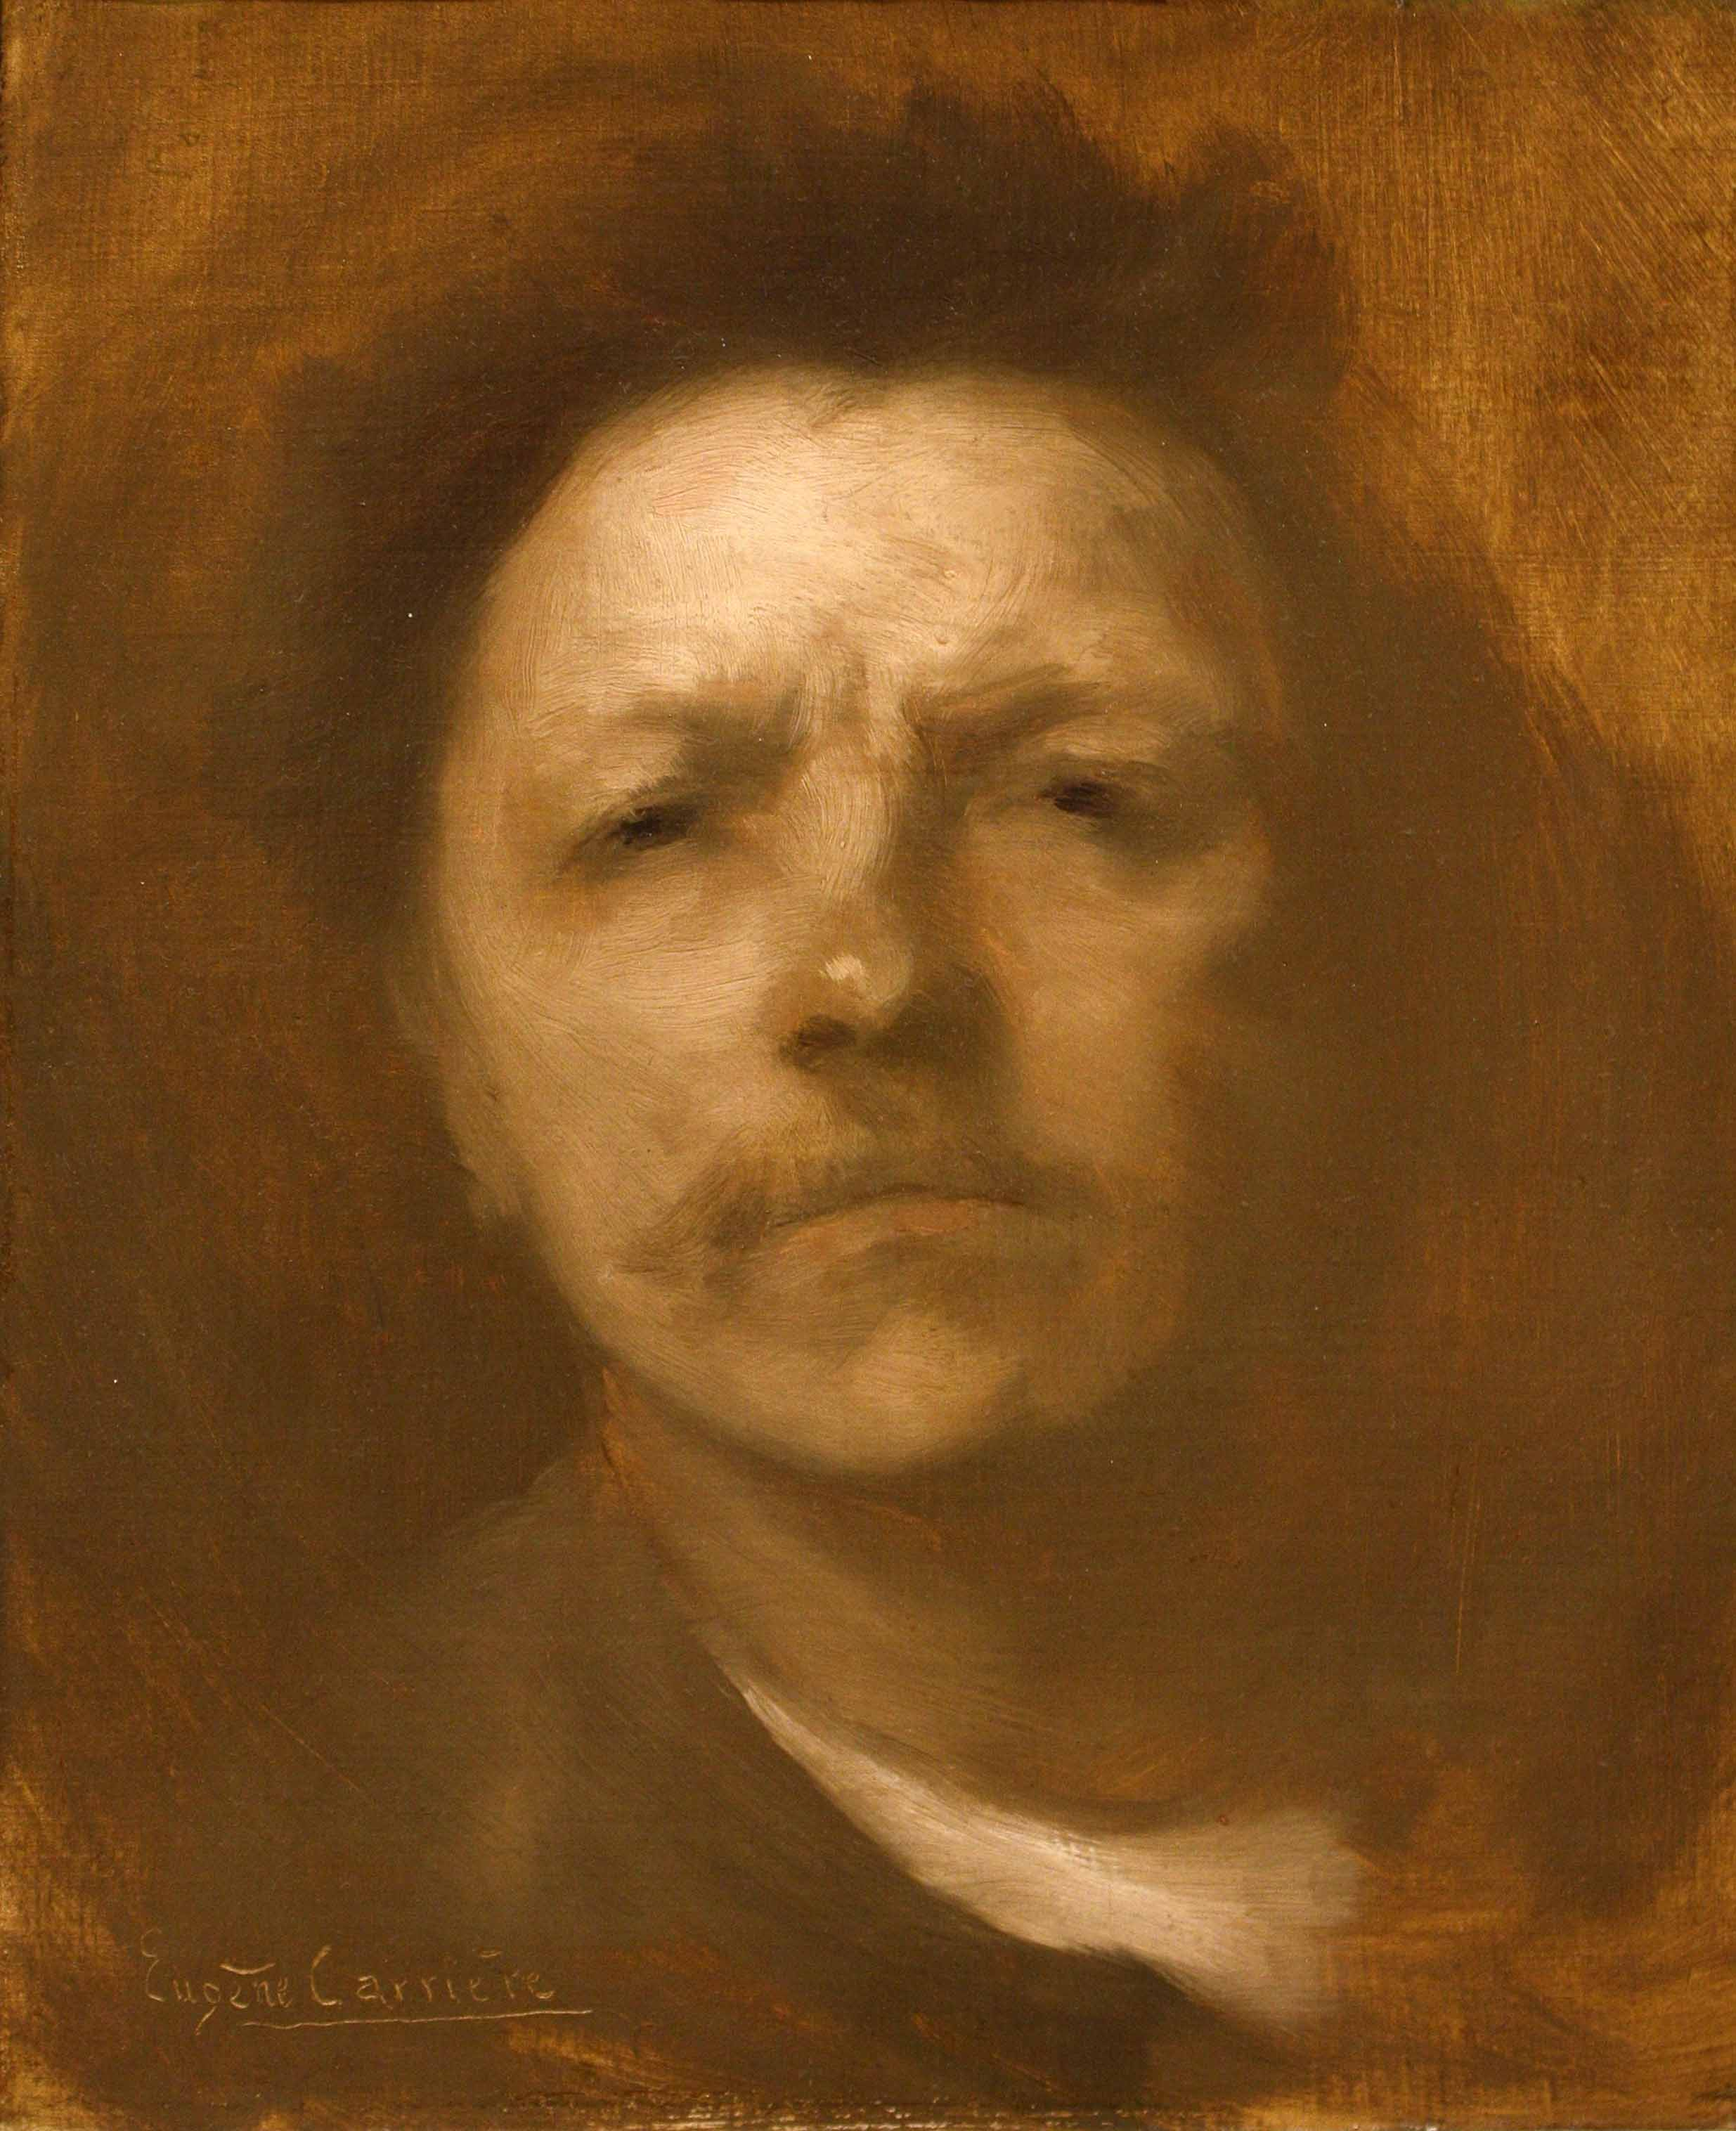 Eugene Carriere Self portrait